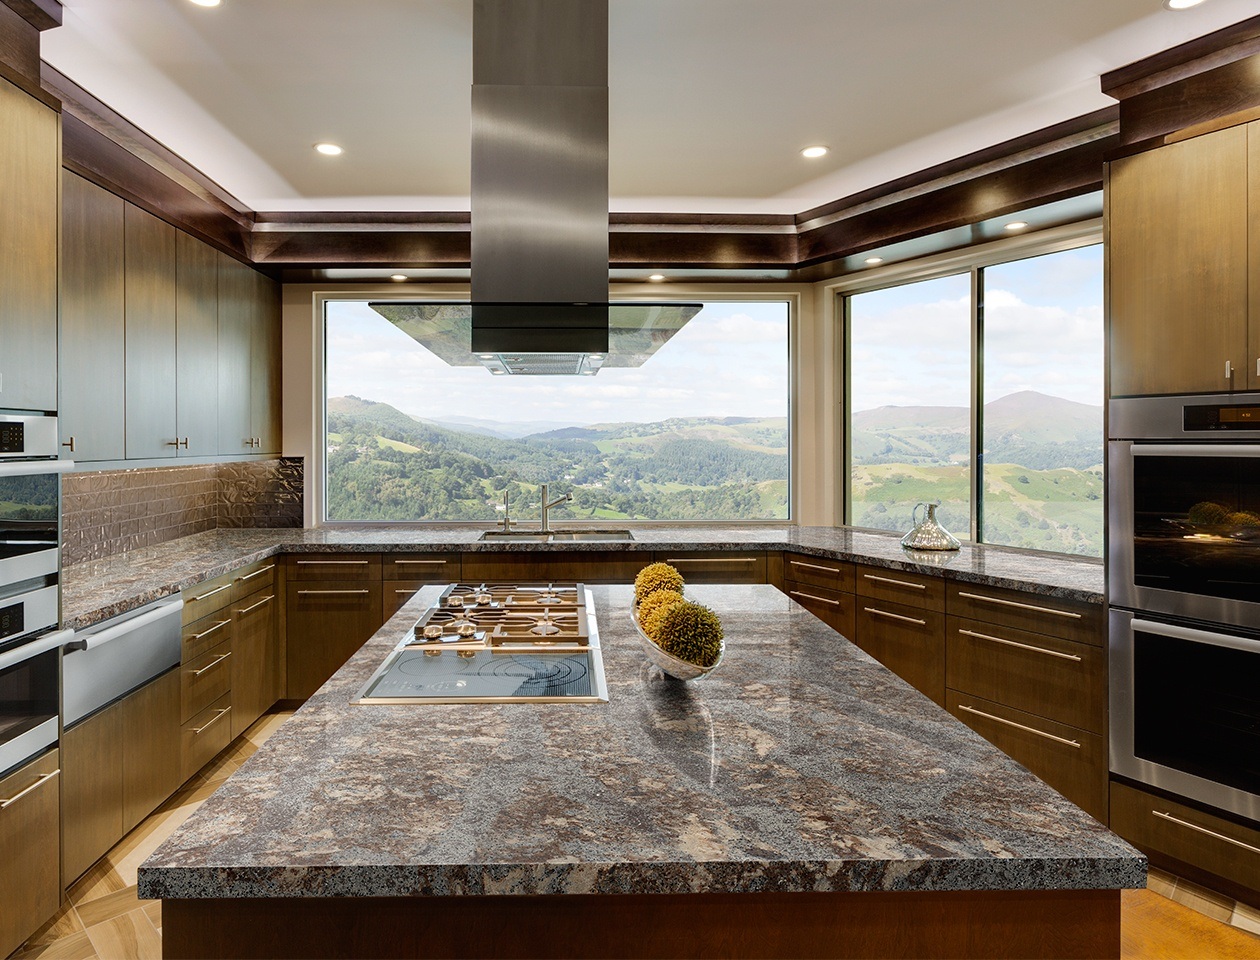 Are Quartz Countertops Natural Or Manmade How Are Quartz Countertops Made